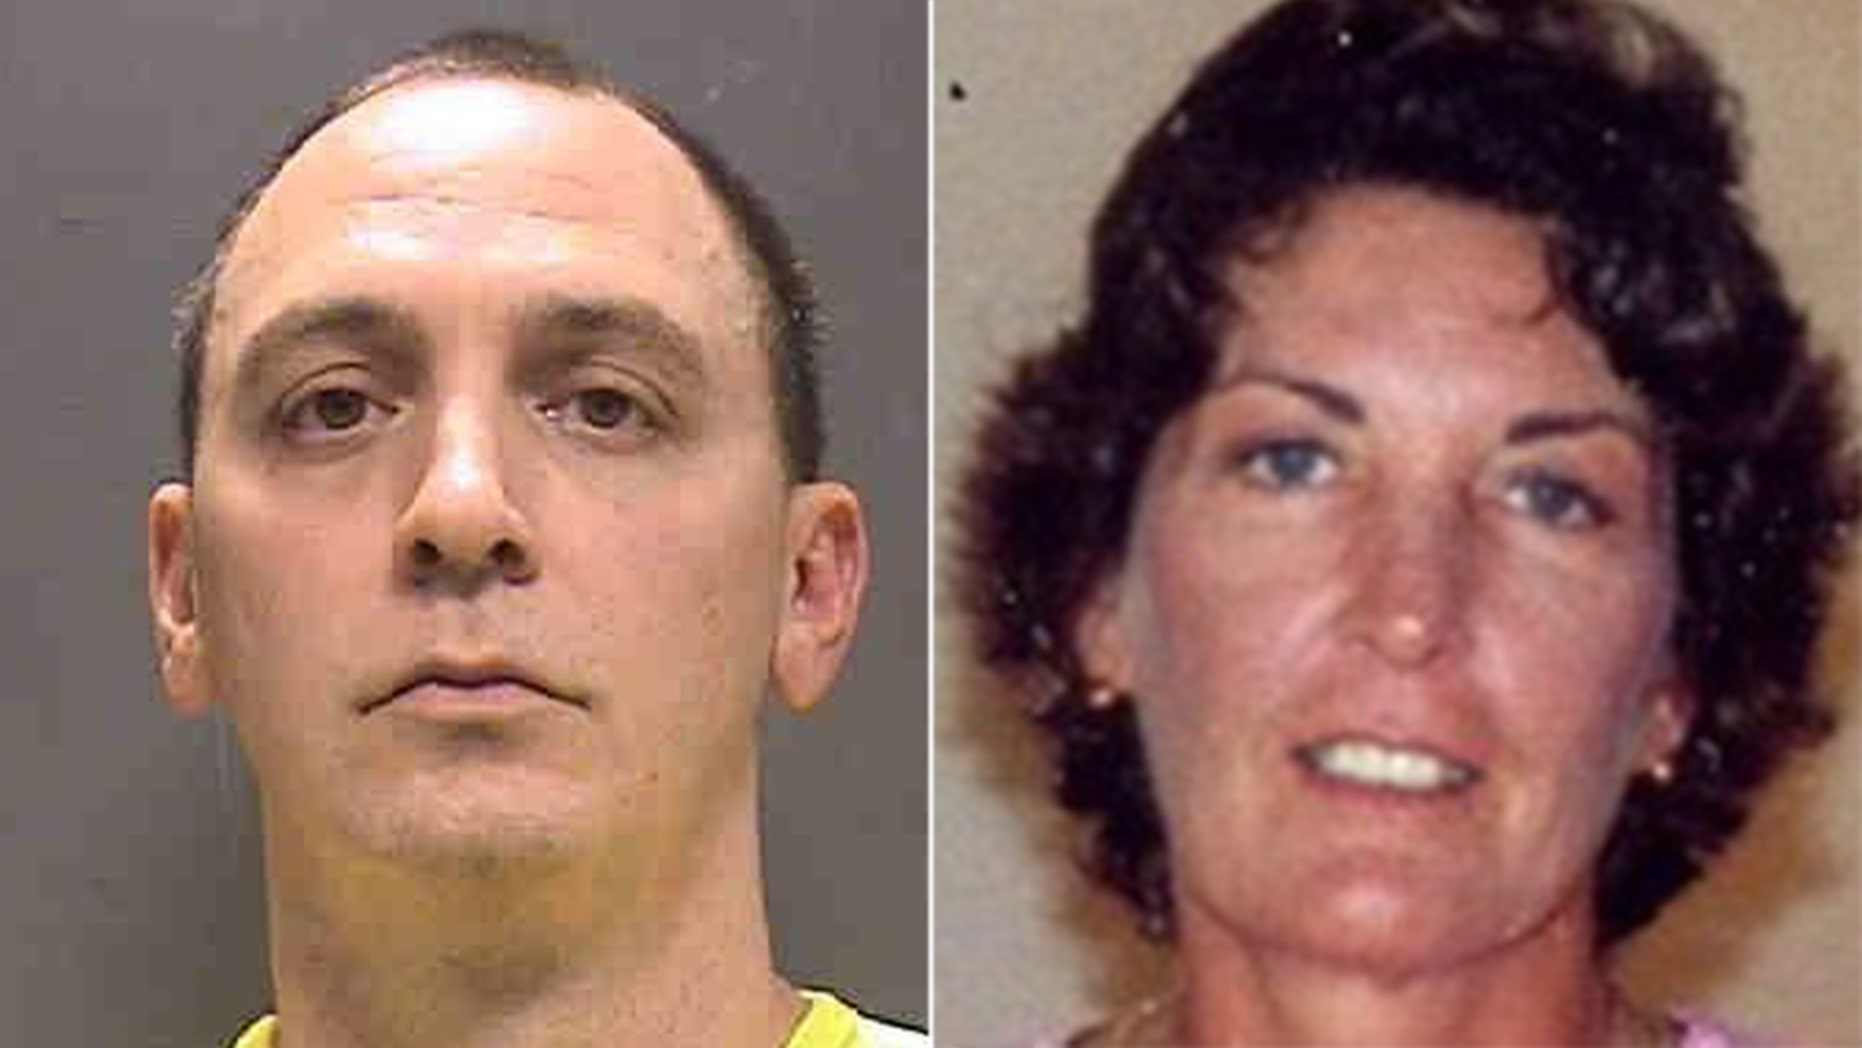 Mugshot (l) for Luke Fleming, 39, was arrested Wednesday and accused of raping, beating and strangling Deborah Dalzell (r.) in her Sarasota home in March 1999.